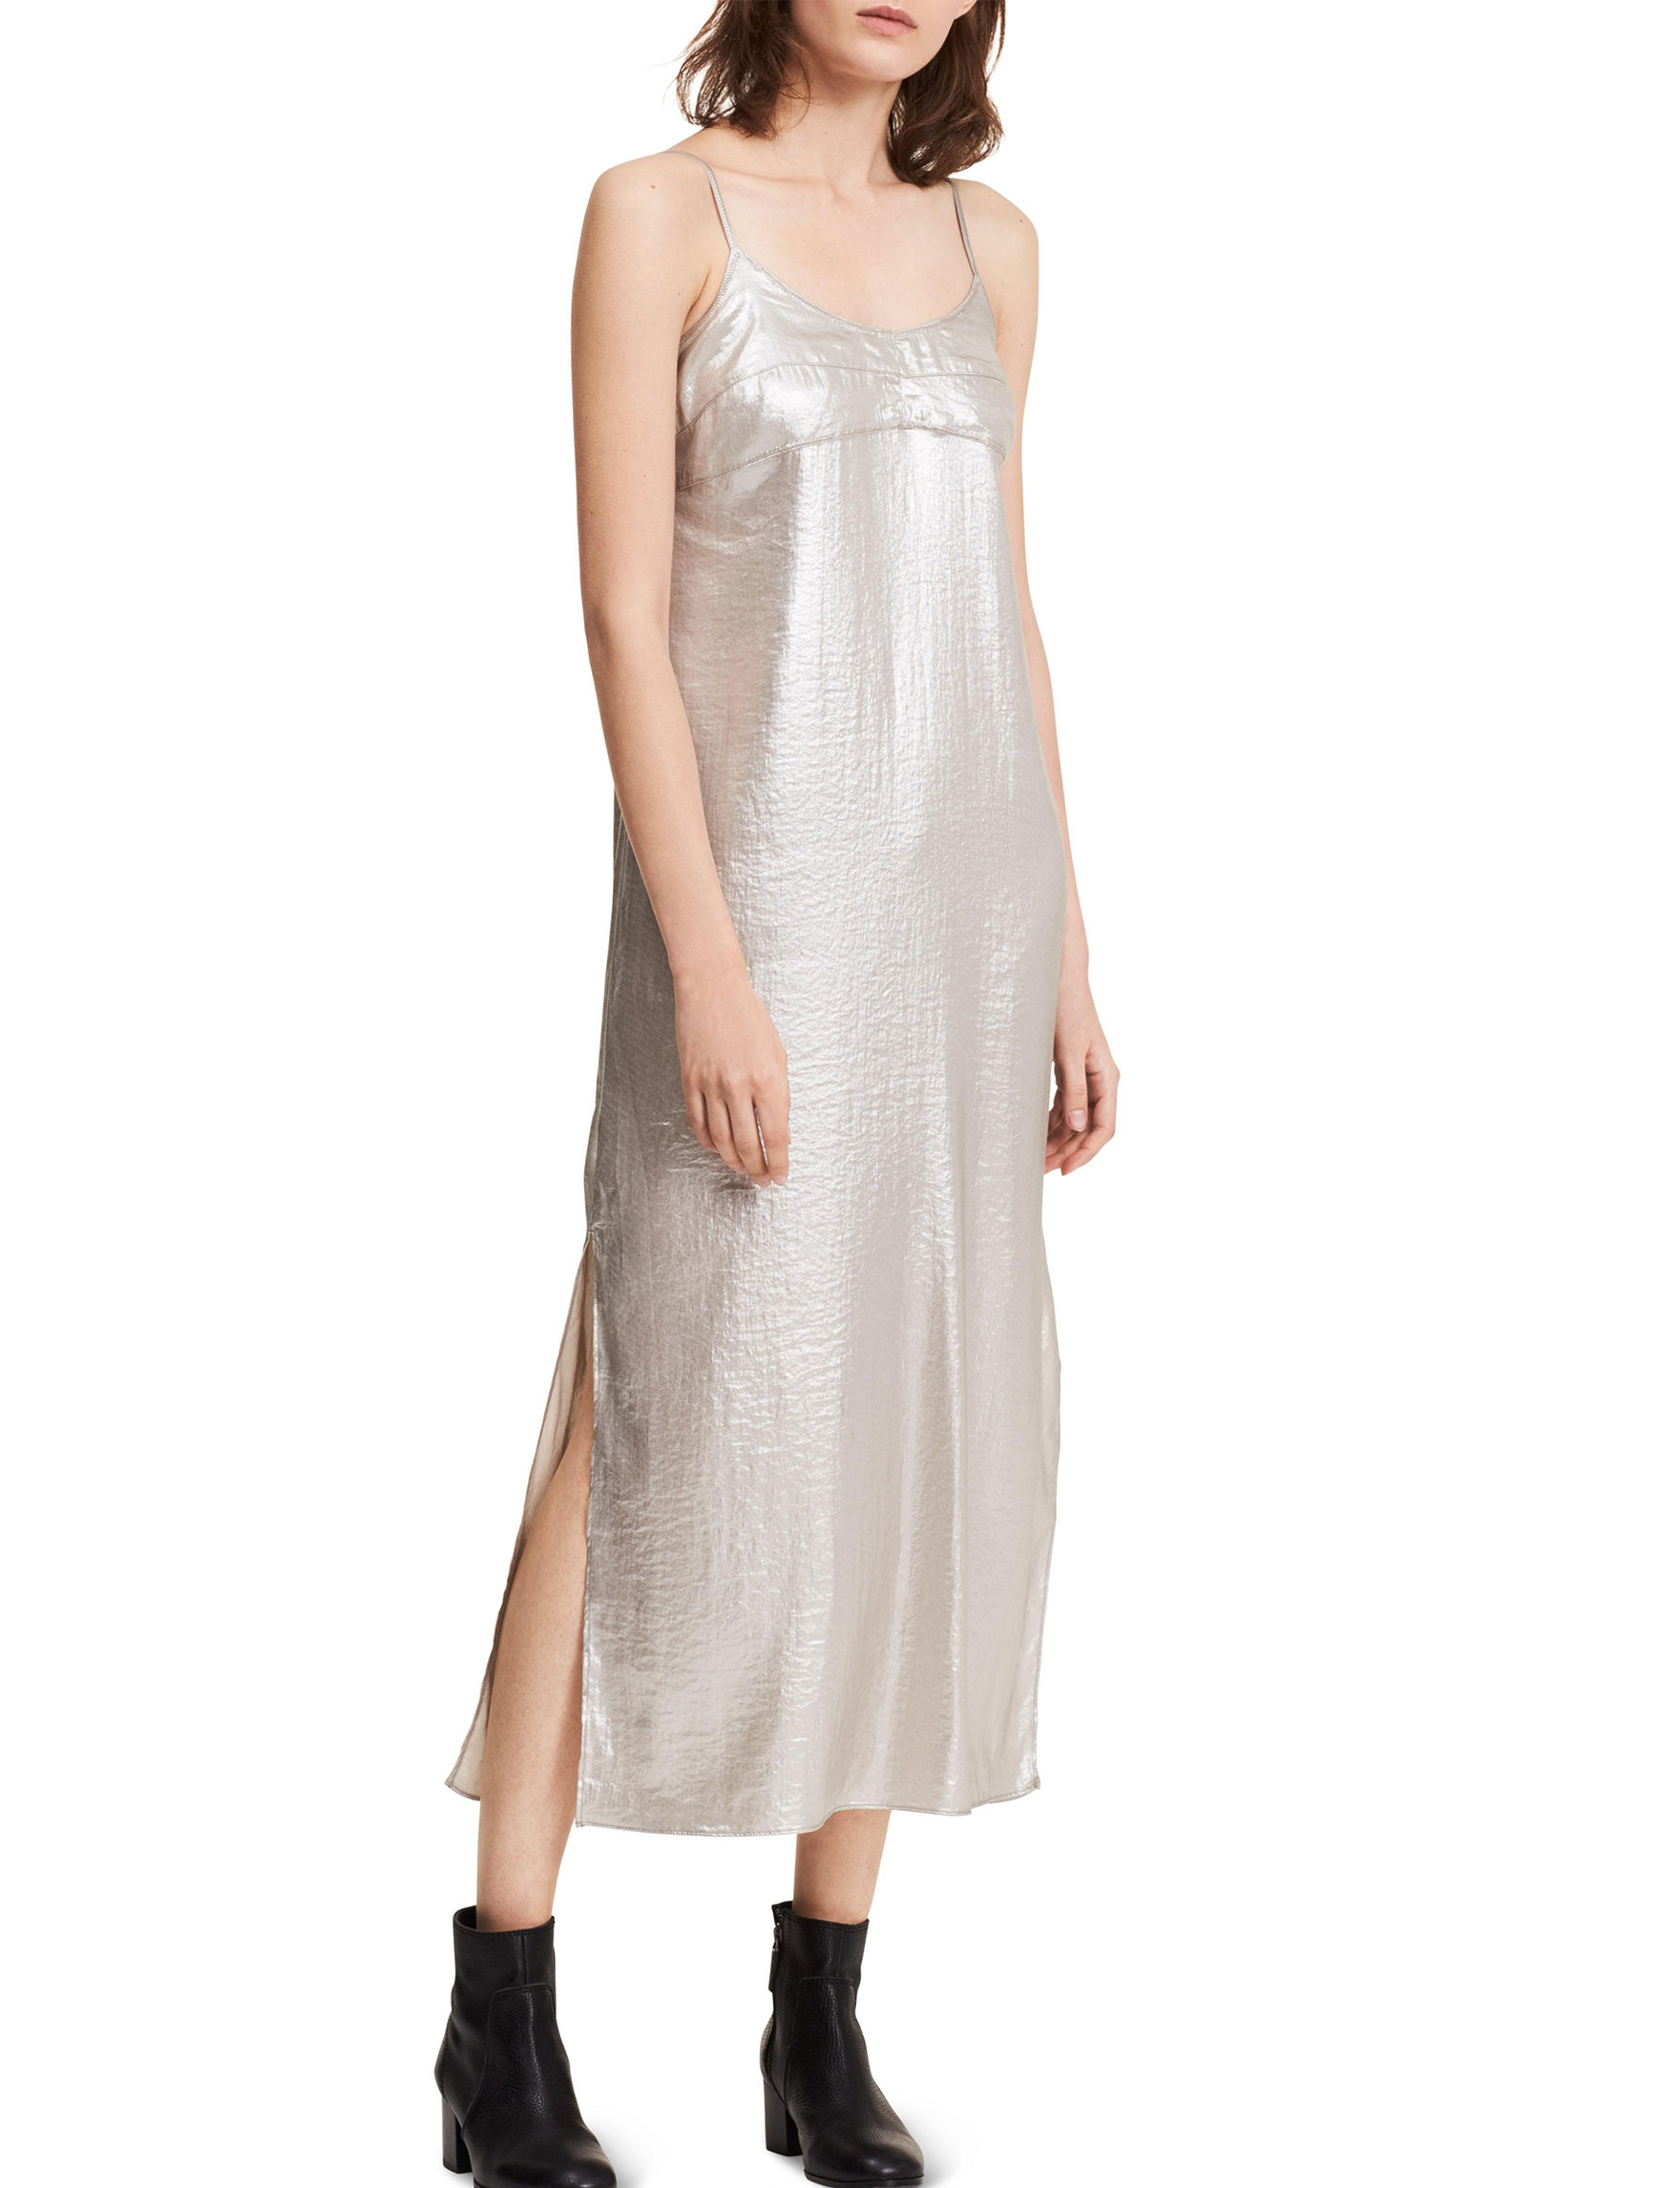 Calvin Klein Jeans Silver Cocktail & Party Shift Dresses